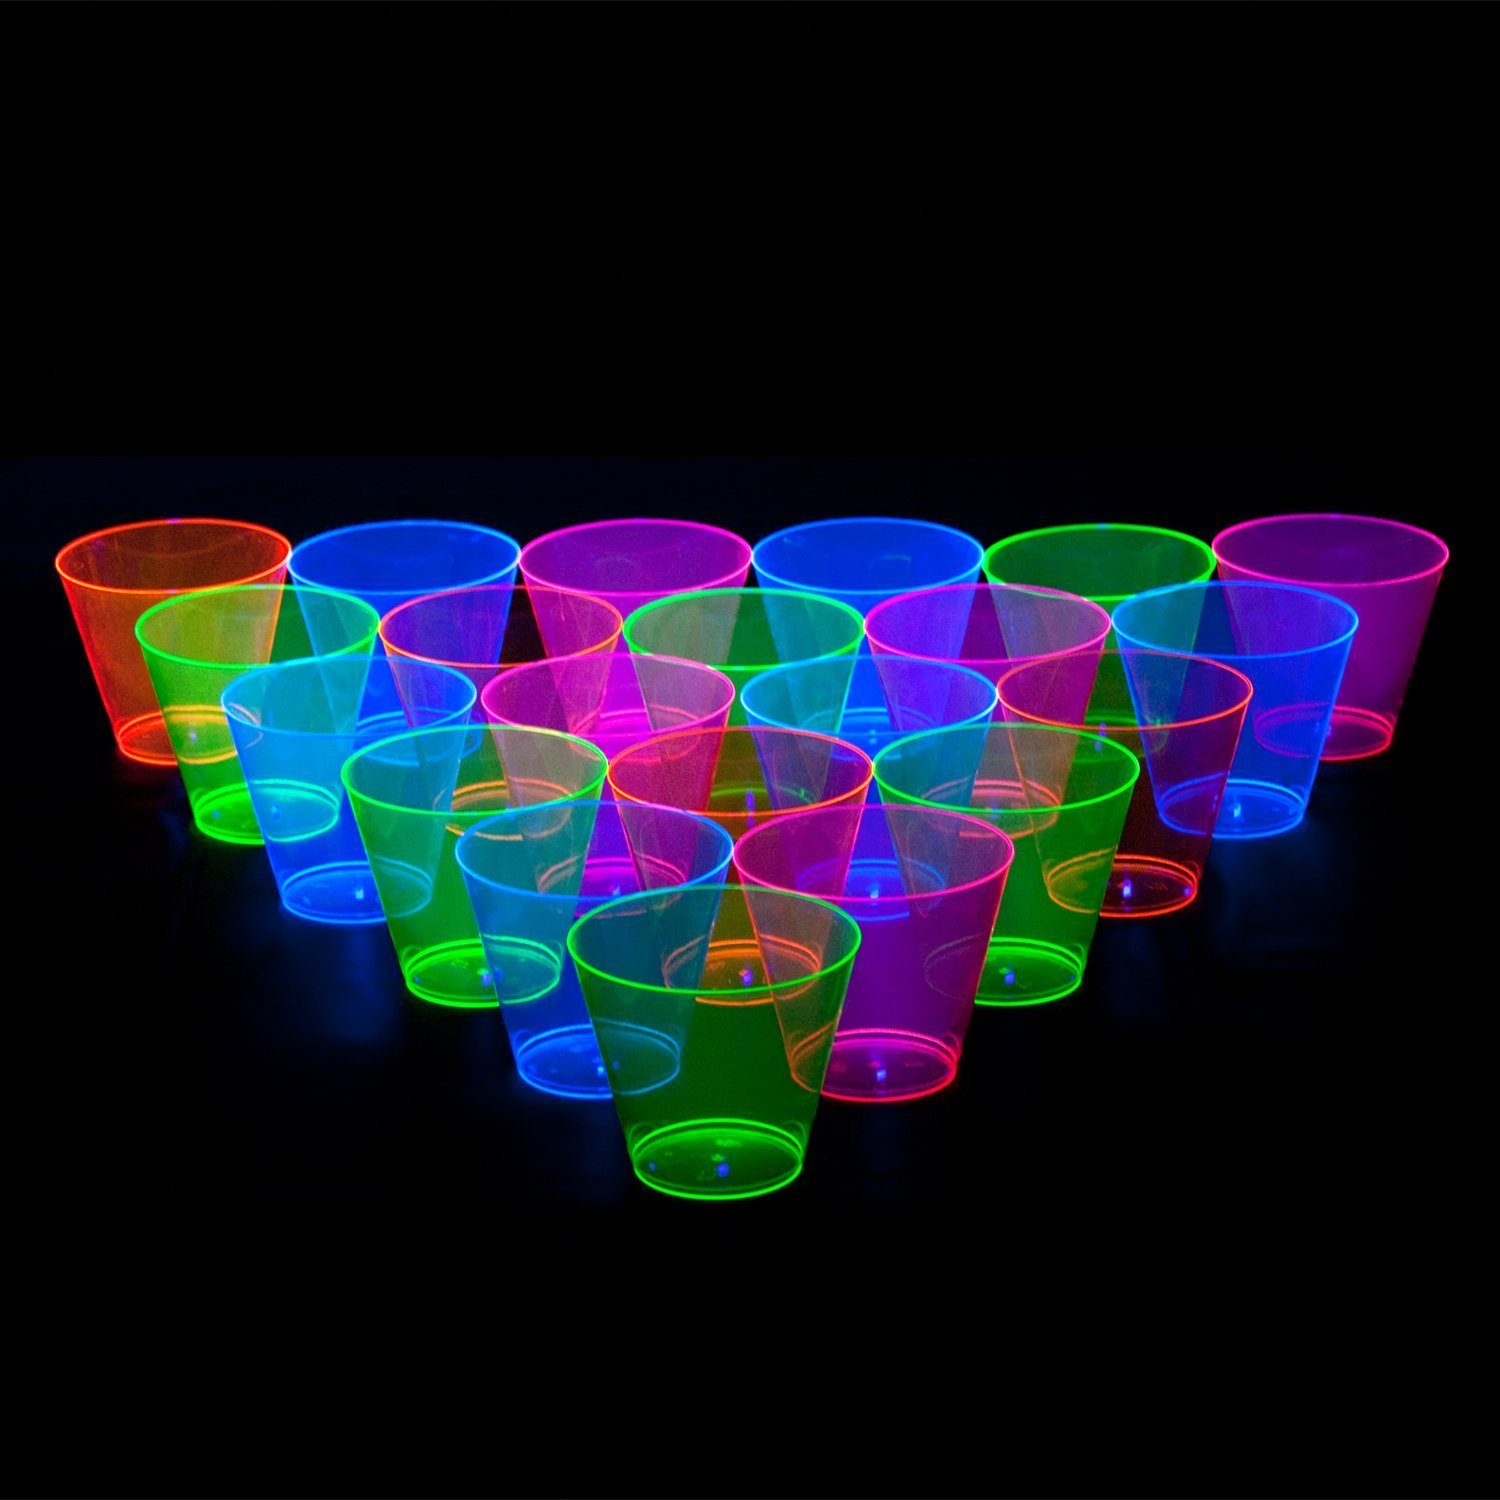 Party Essentials Hard Plastic 9-Ounce Party Cups/Old Fashioned Tumblers, 200-Count, Assorted Neon by Party Essentials (Image #5)